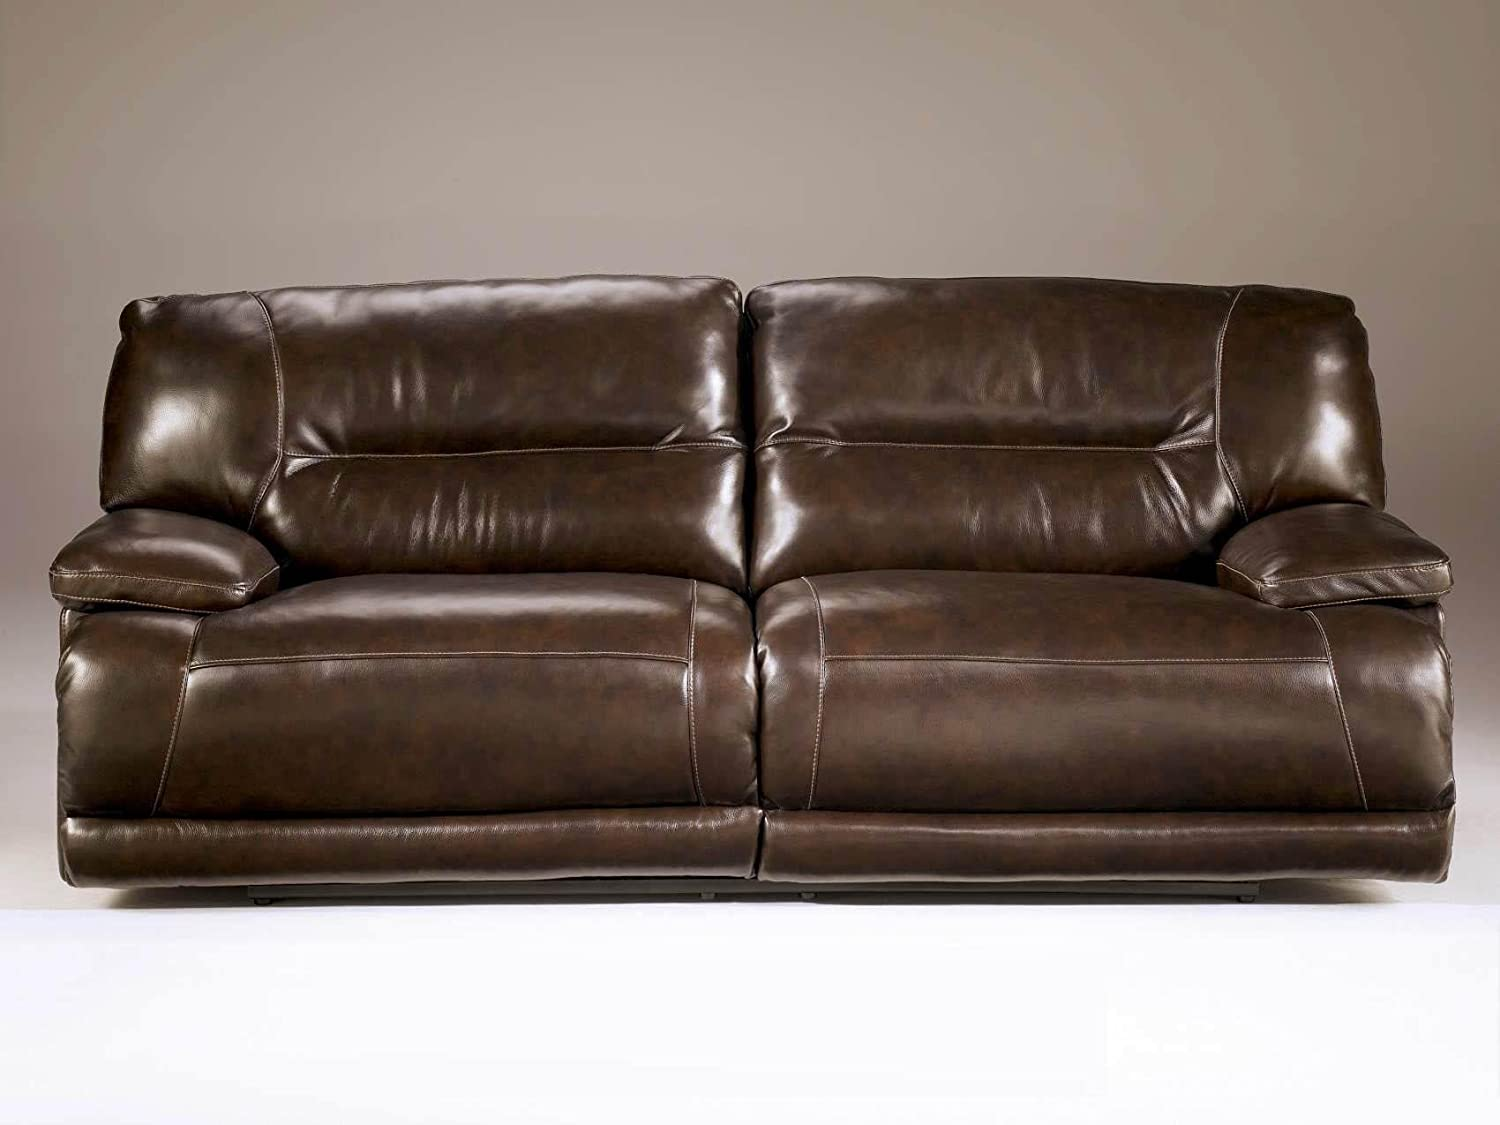 ashley leather living room furniture. Amazon.com: Ashley Furniture Signature Design - Exhilaration Recliner Sofa Power Reclining Couch Chocolate Brown: Kitchen \u0026 Dining Leather Living Room U